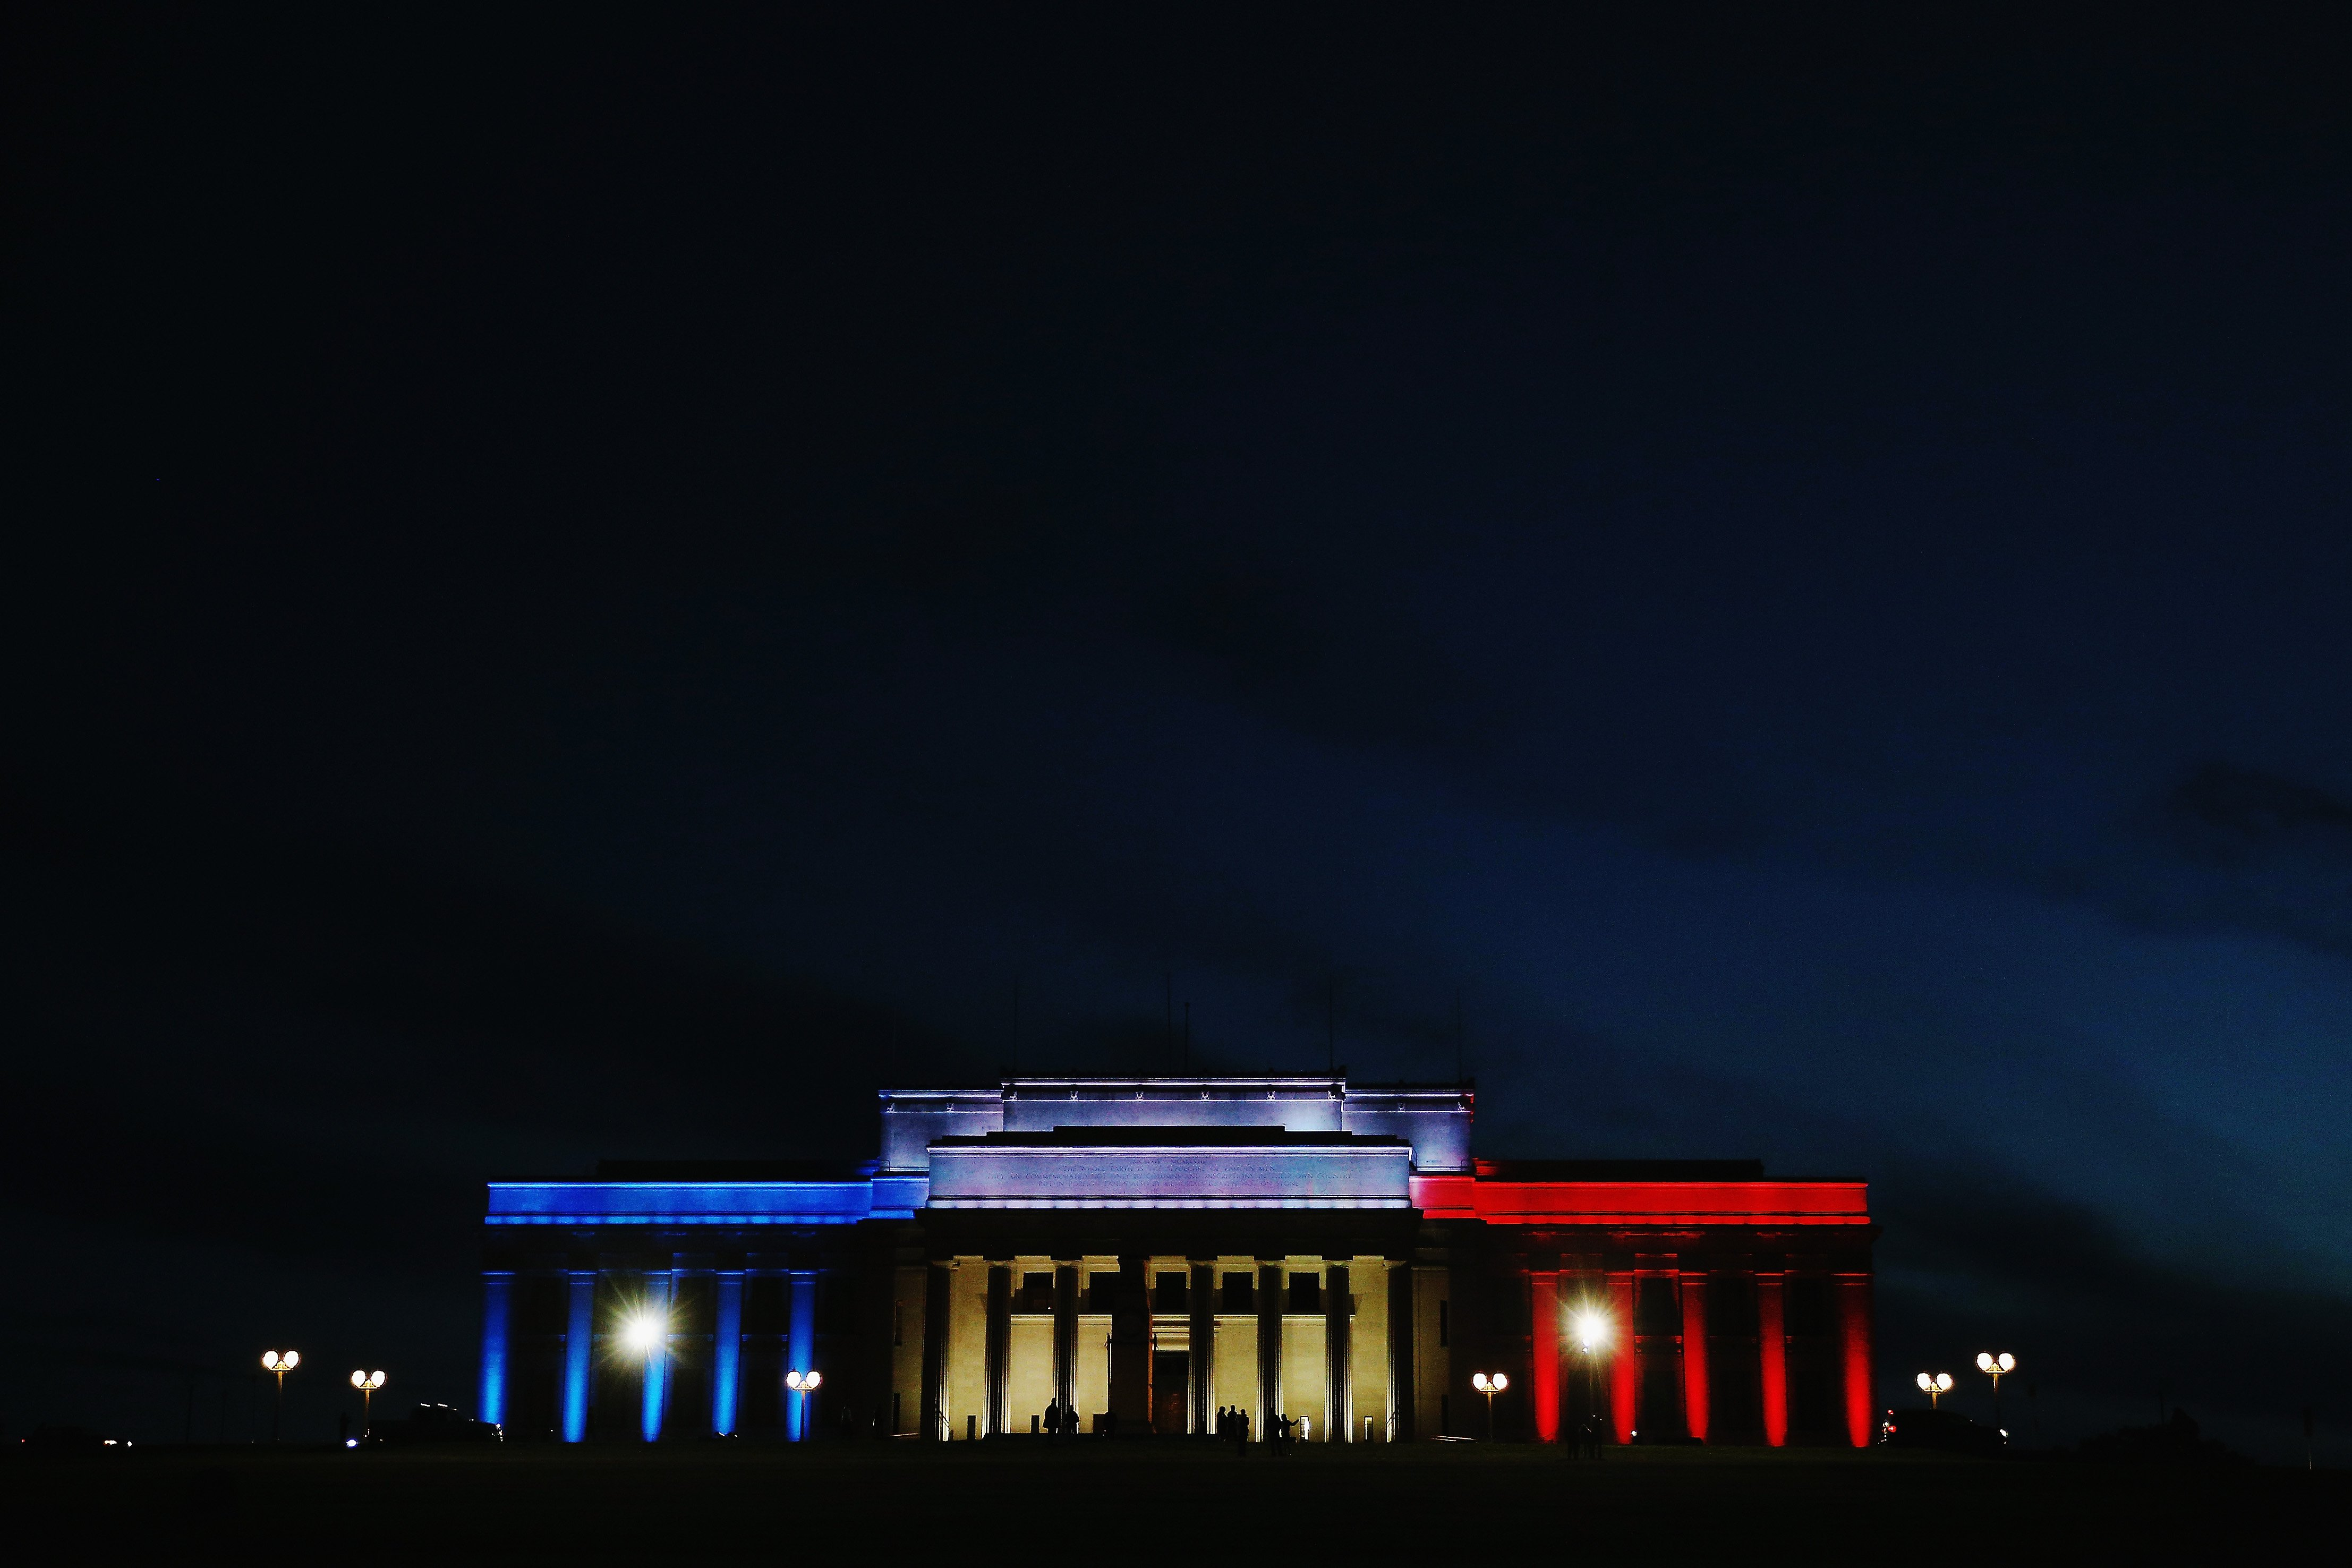 Lights in the colors of the French flag, light up the Auckland Museum to remember victims of the Paris attacks, in New Zealand on Nov. 14, 2015.